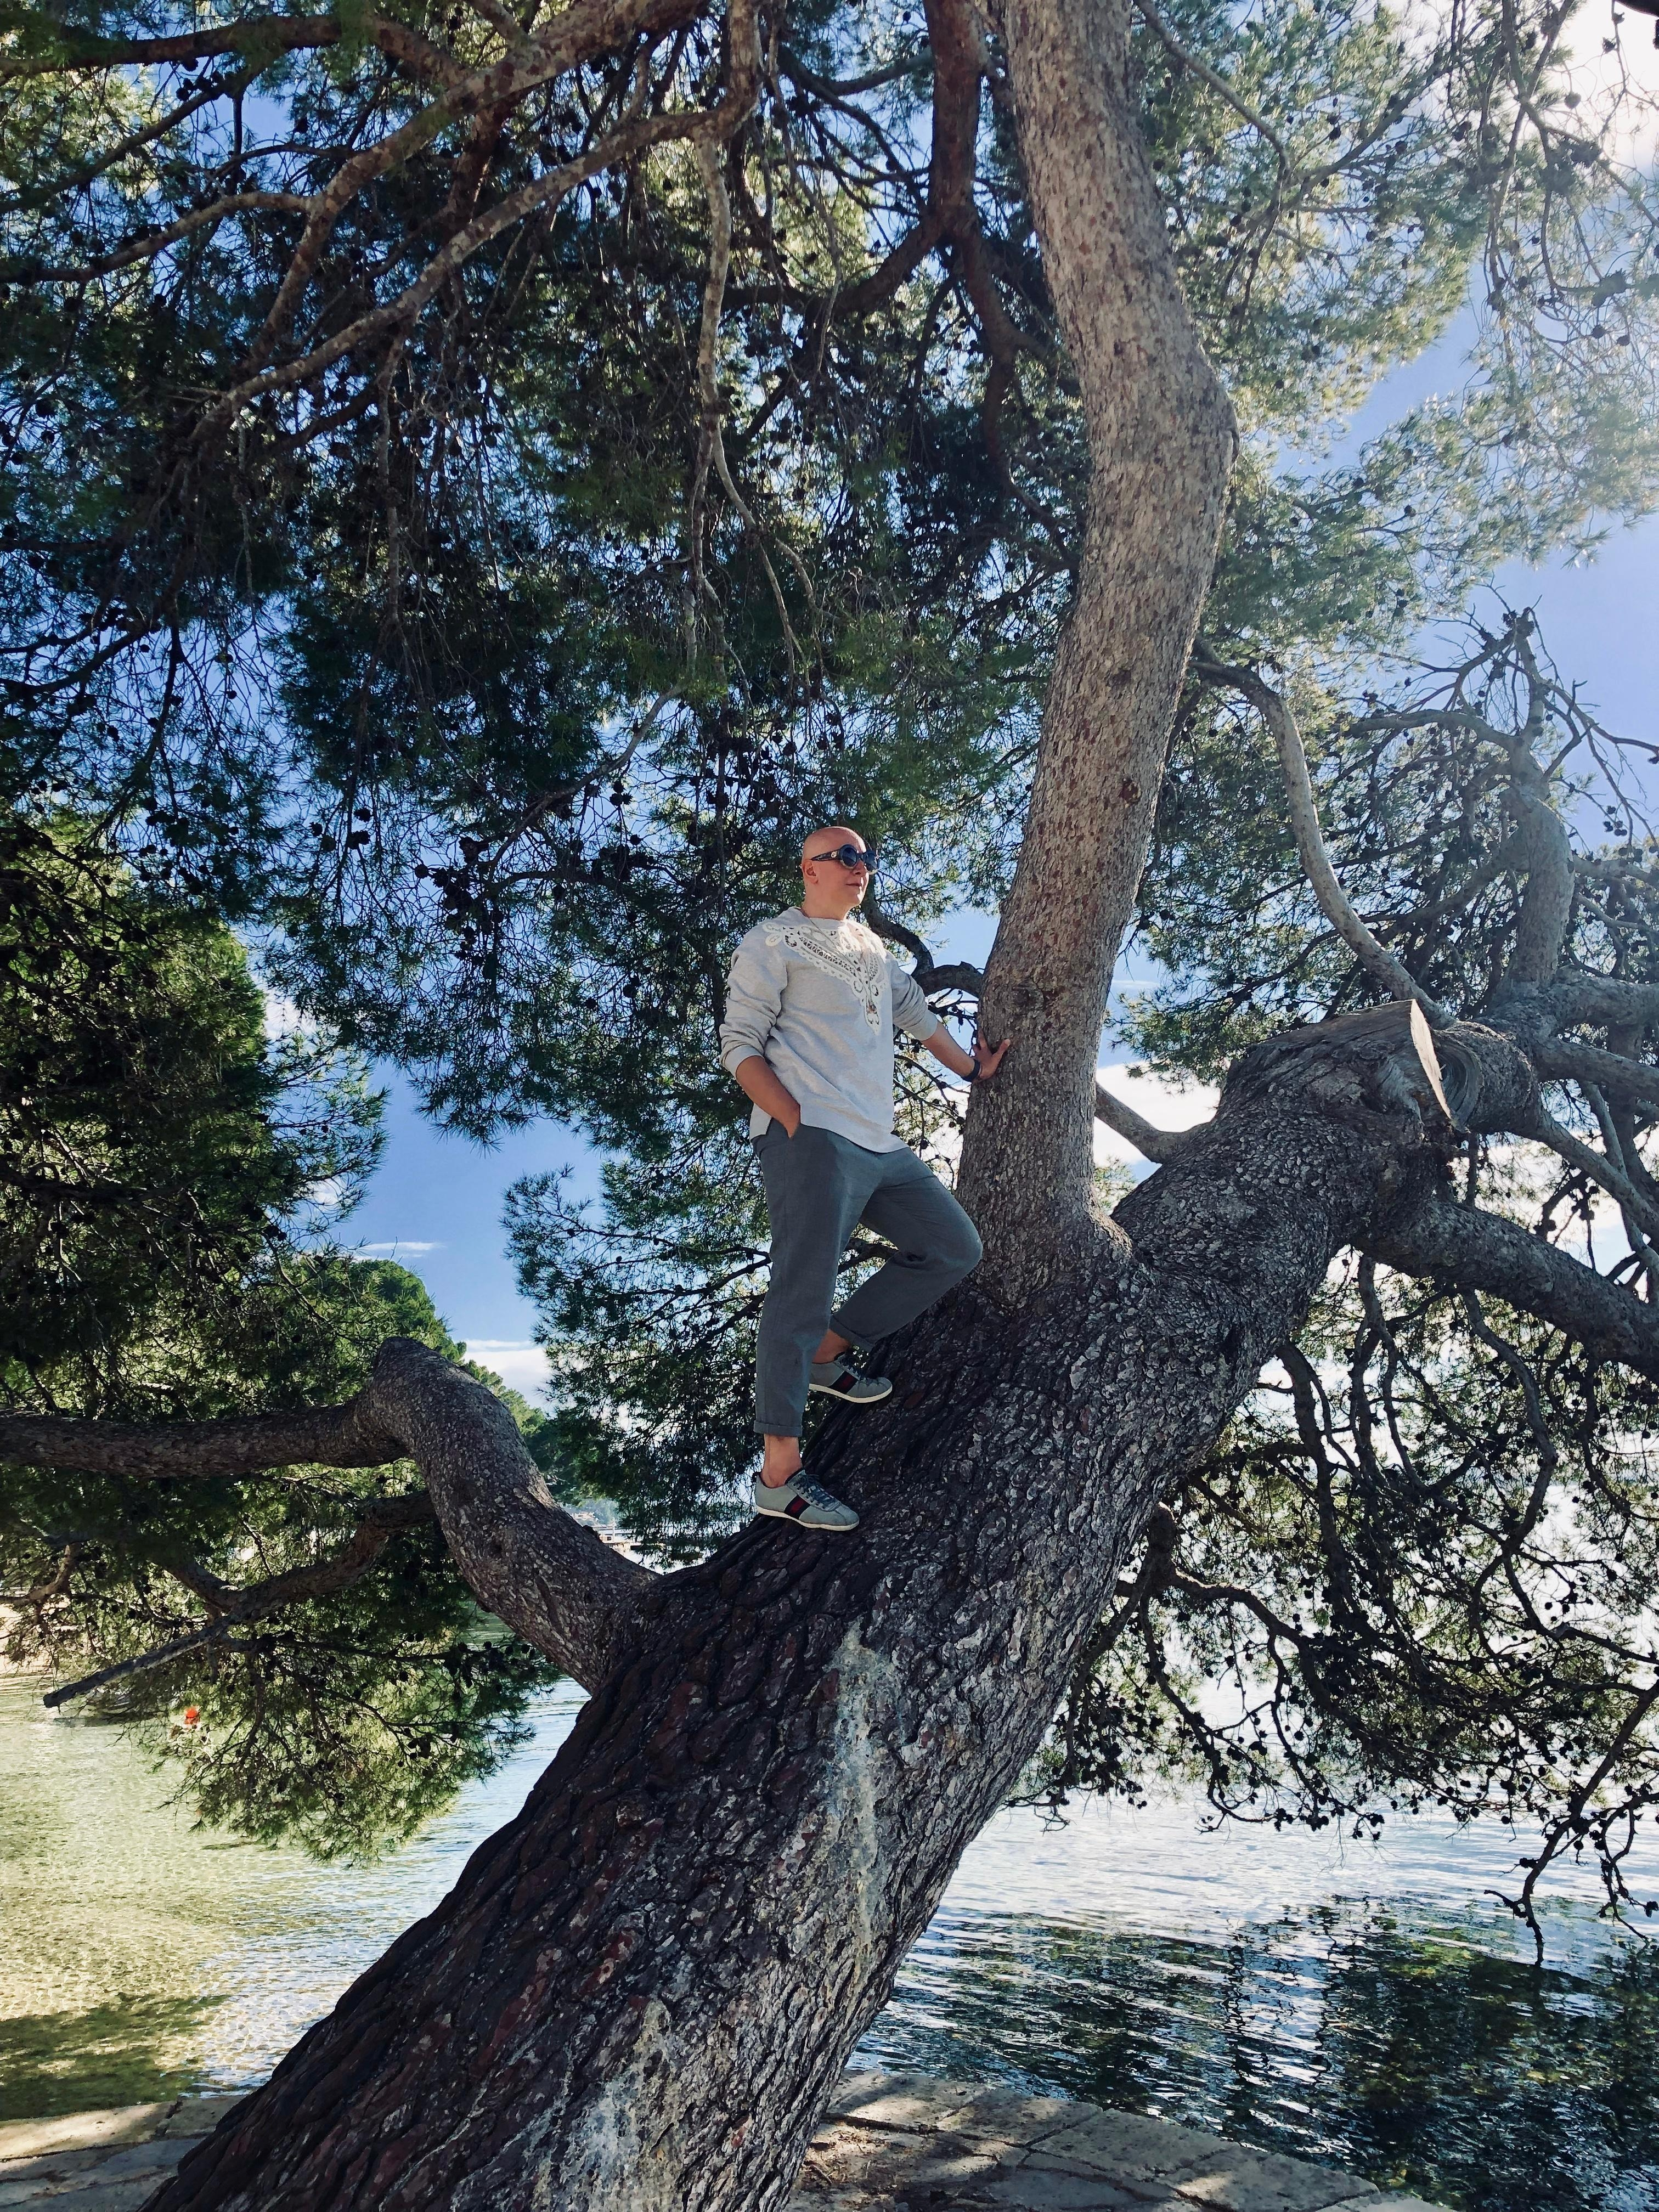 Fashionable Tree Climbing. #fashion #style #nature #travel #weekend #mallorca #sun #friends